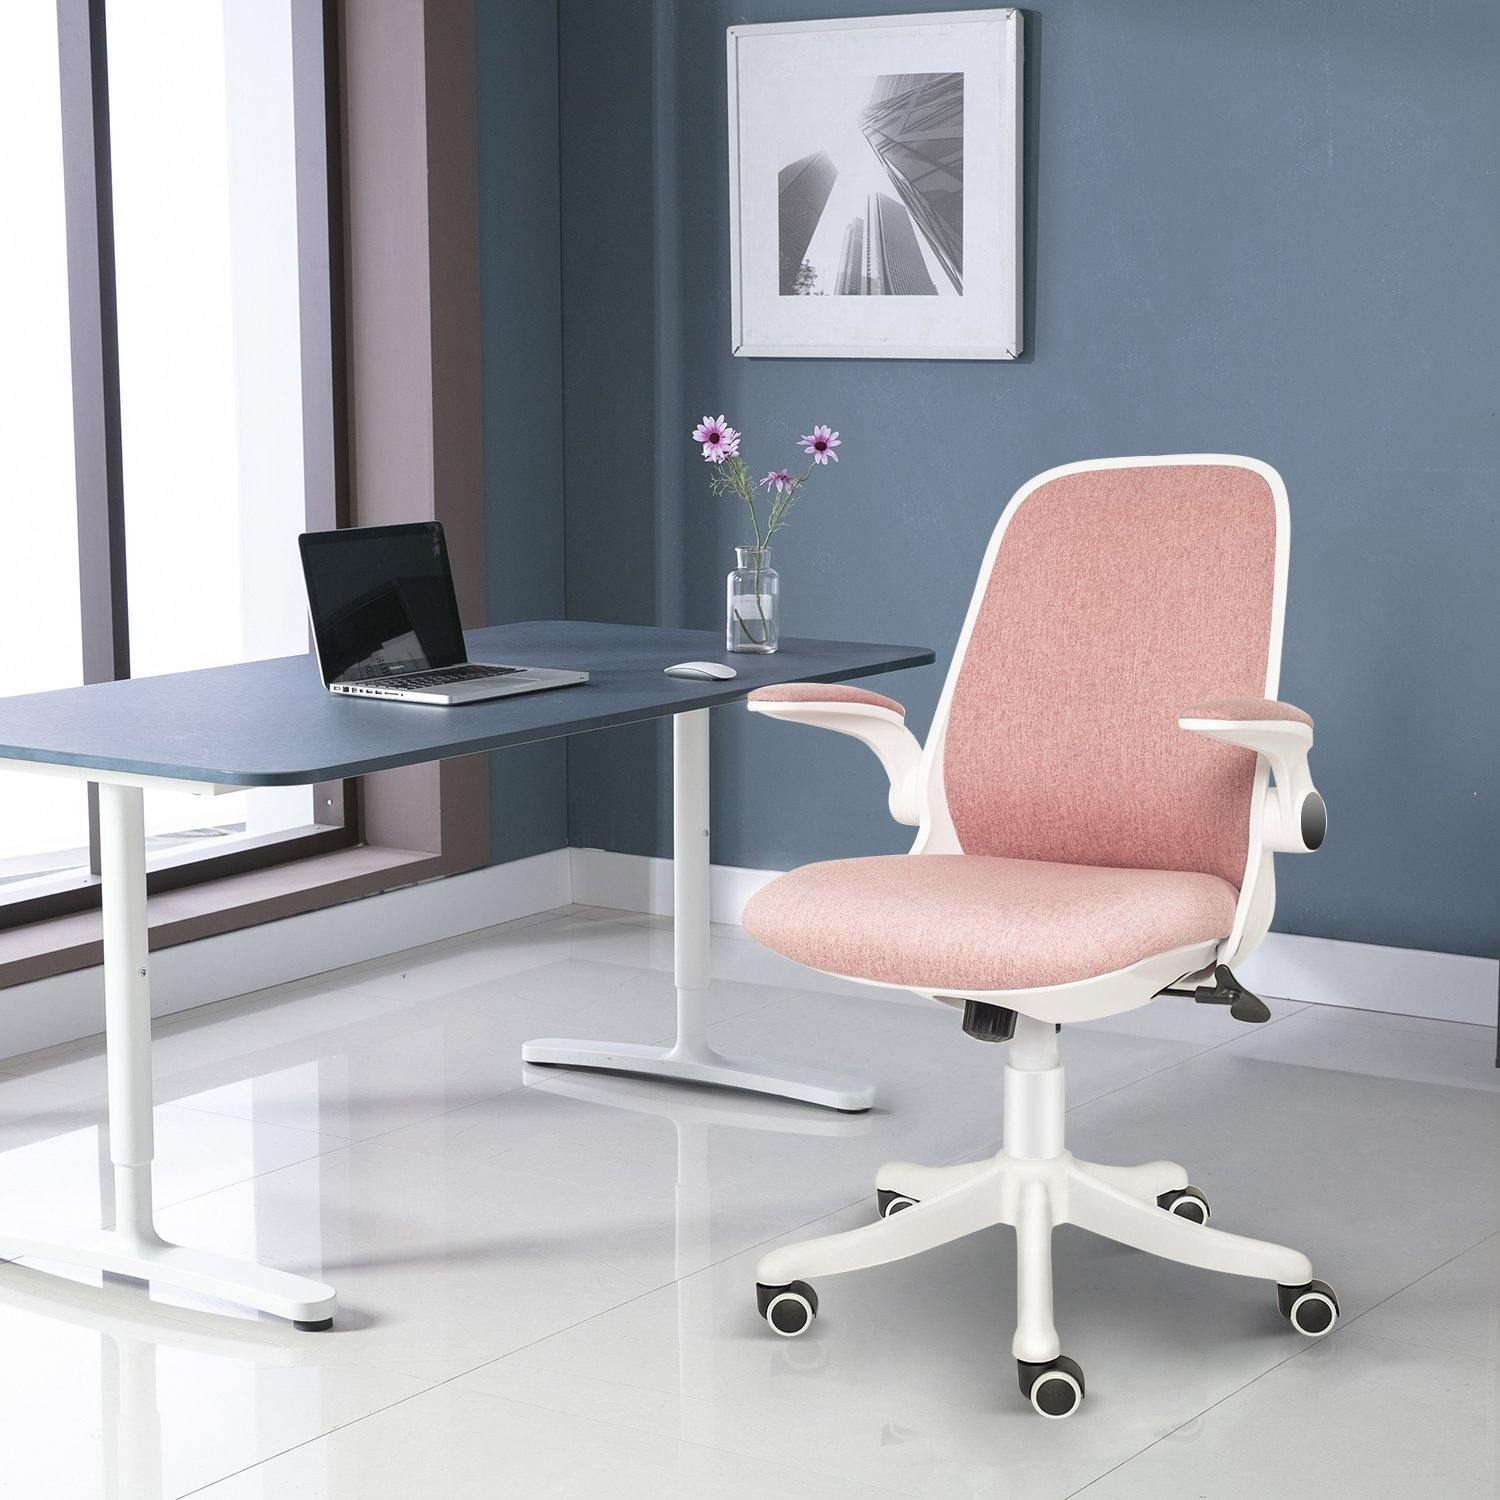 ELECWISH Ultra Comfort Ergonomic Office Chair, Movable Lumber Support, Ergonomic Design